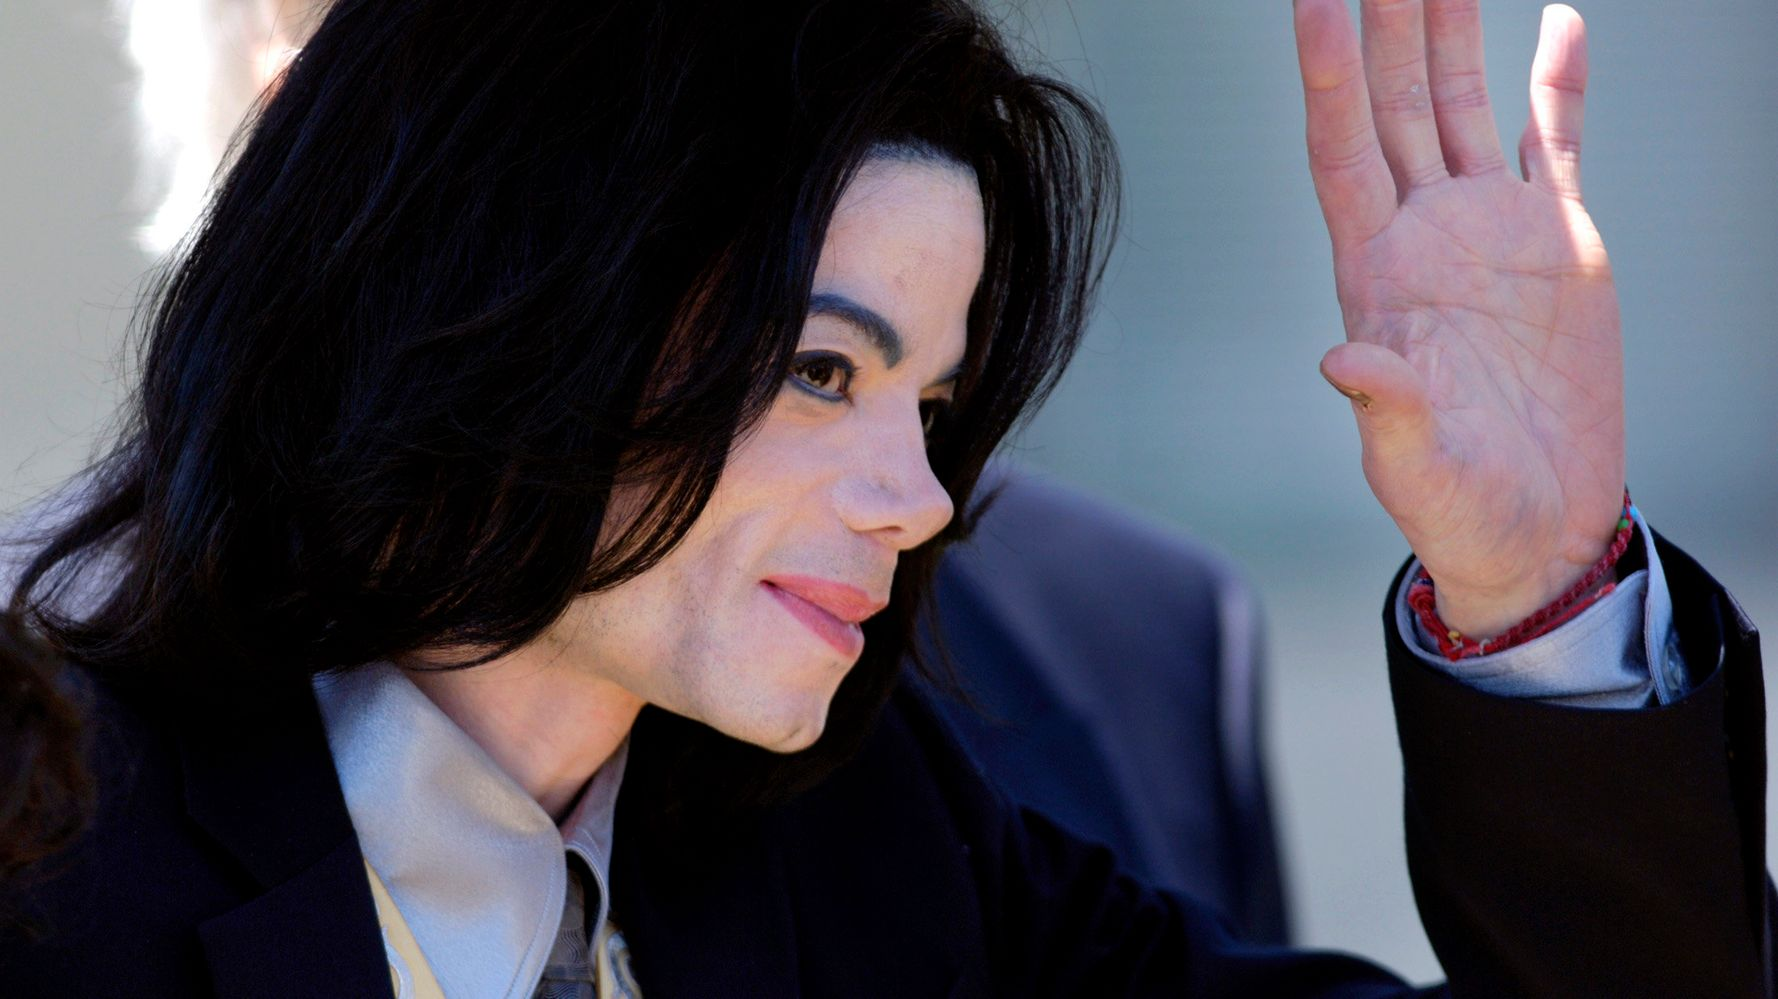 The Truth About What Michael Jackson Had (And Didn't Have) In His